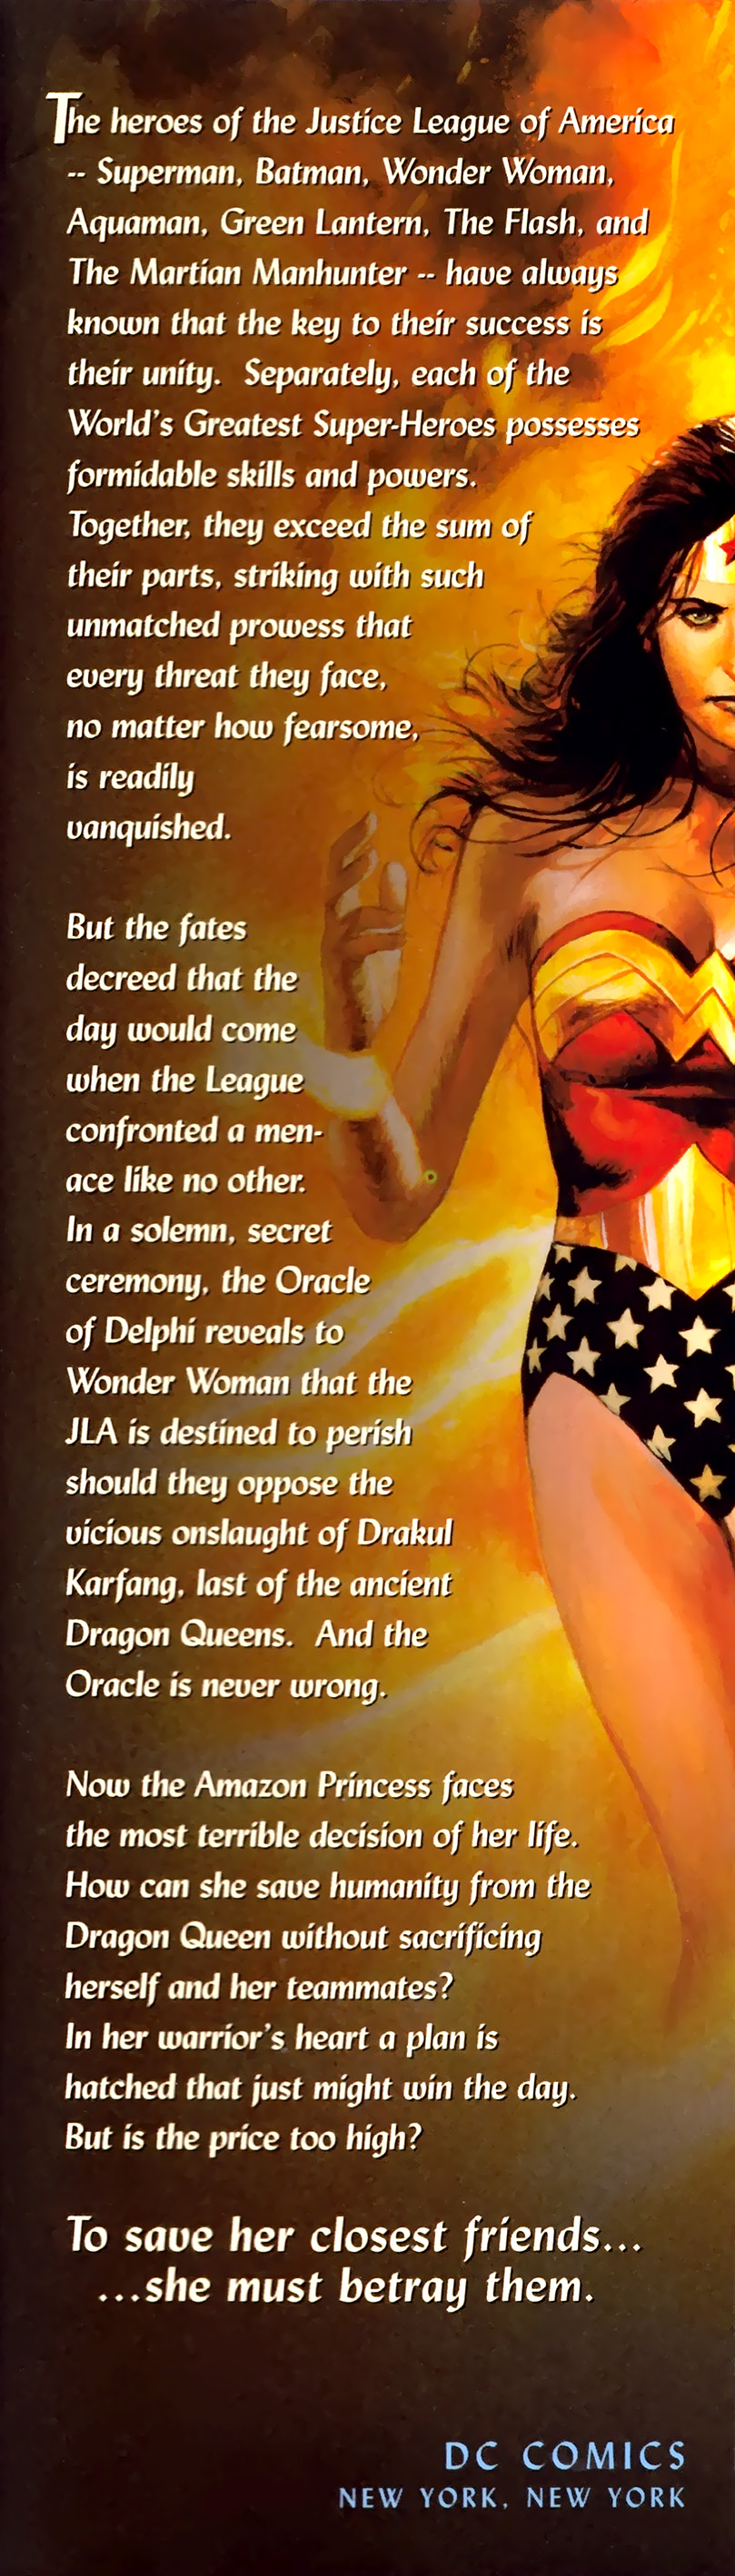 Read online JLA: A League of One comic -  Issue # Full - 2